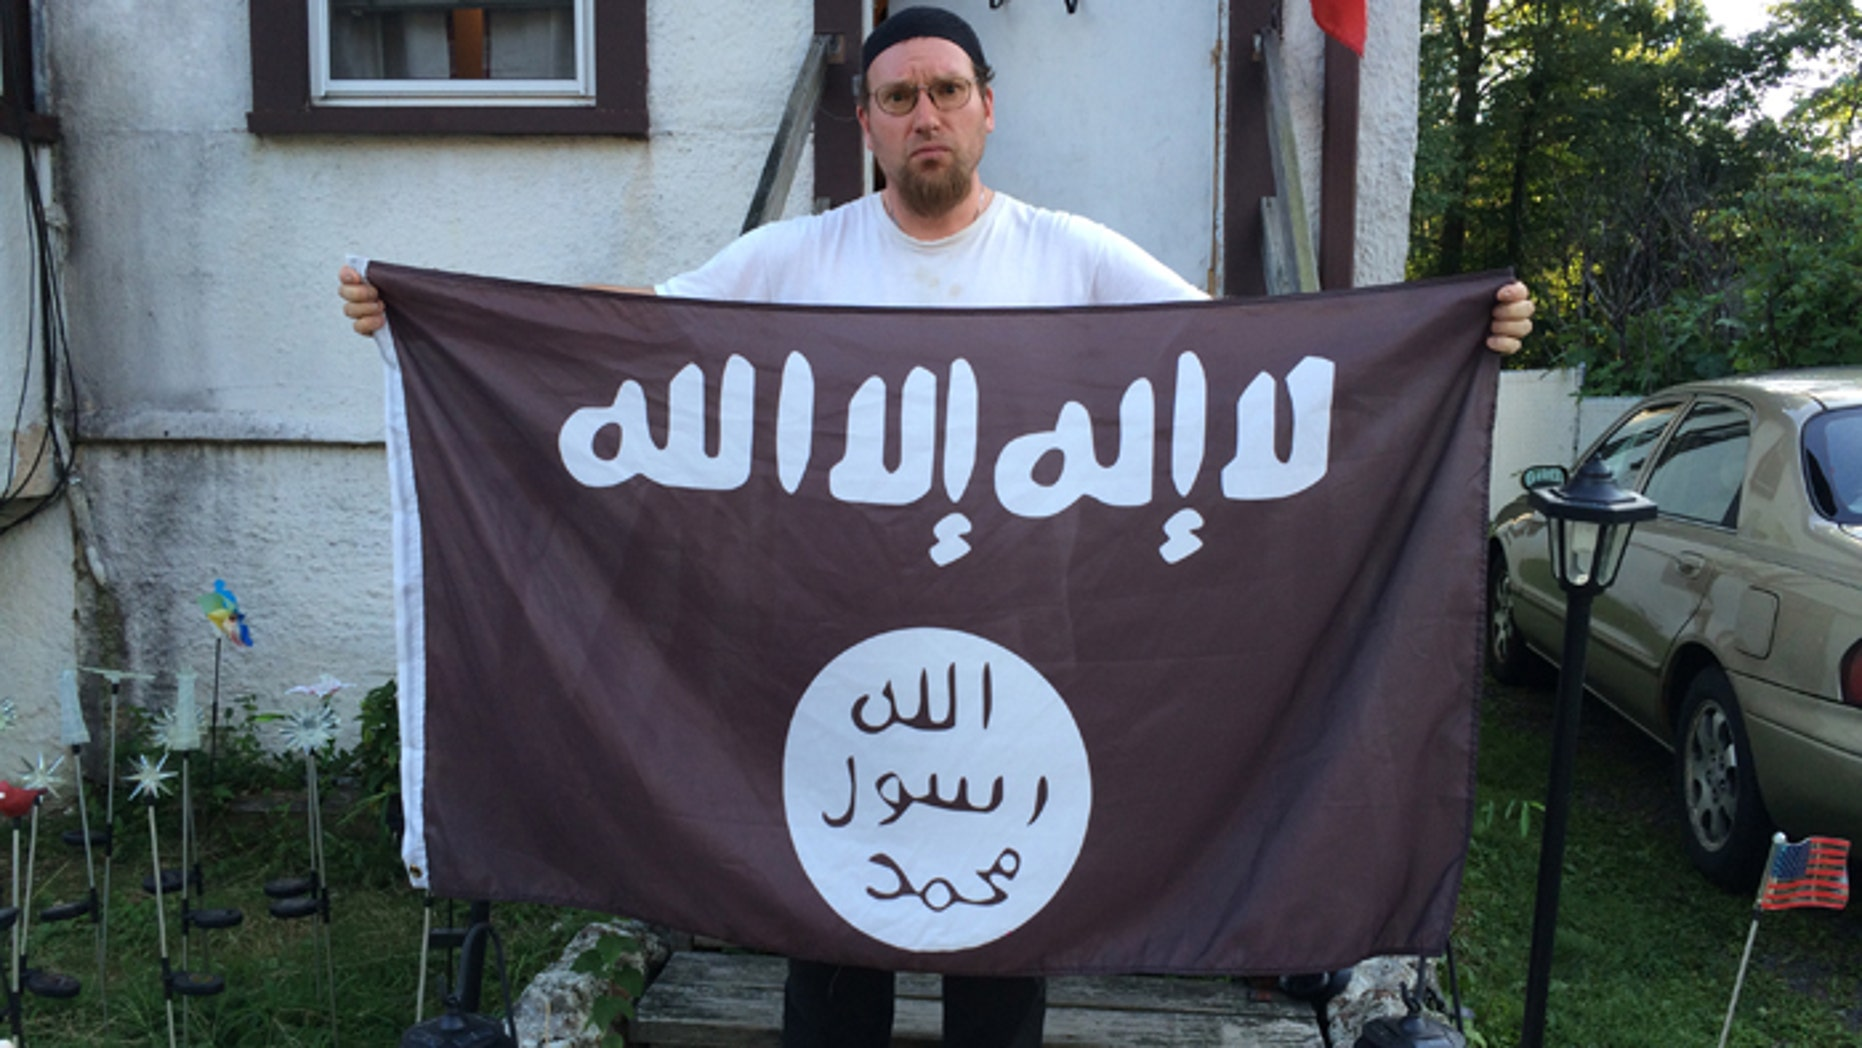 Mark Dunaway says he converted to Islam more than 10 years ago and has long flown a flag that has since been adopted as the banner of ISIS, the murderous jihadist  group that claims to have established a caliphate in Iraq and Syria. (FoxNews.com)